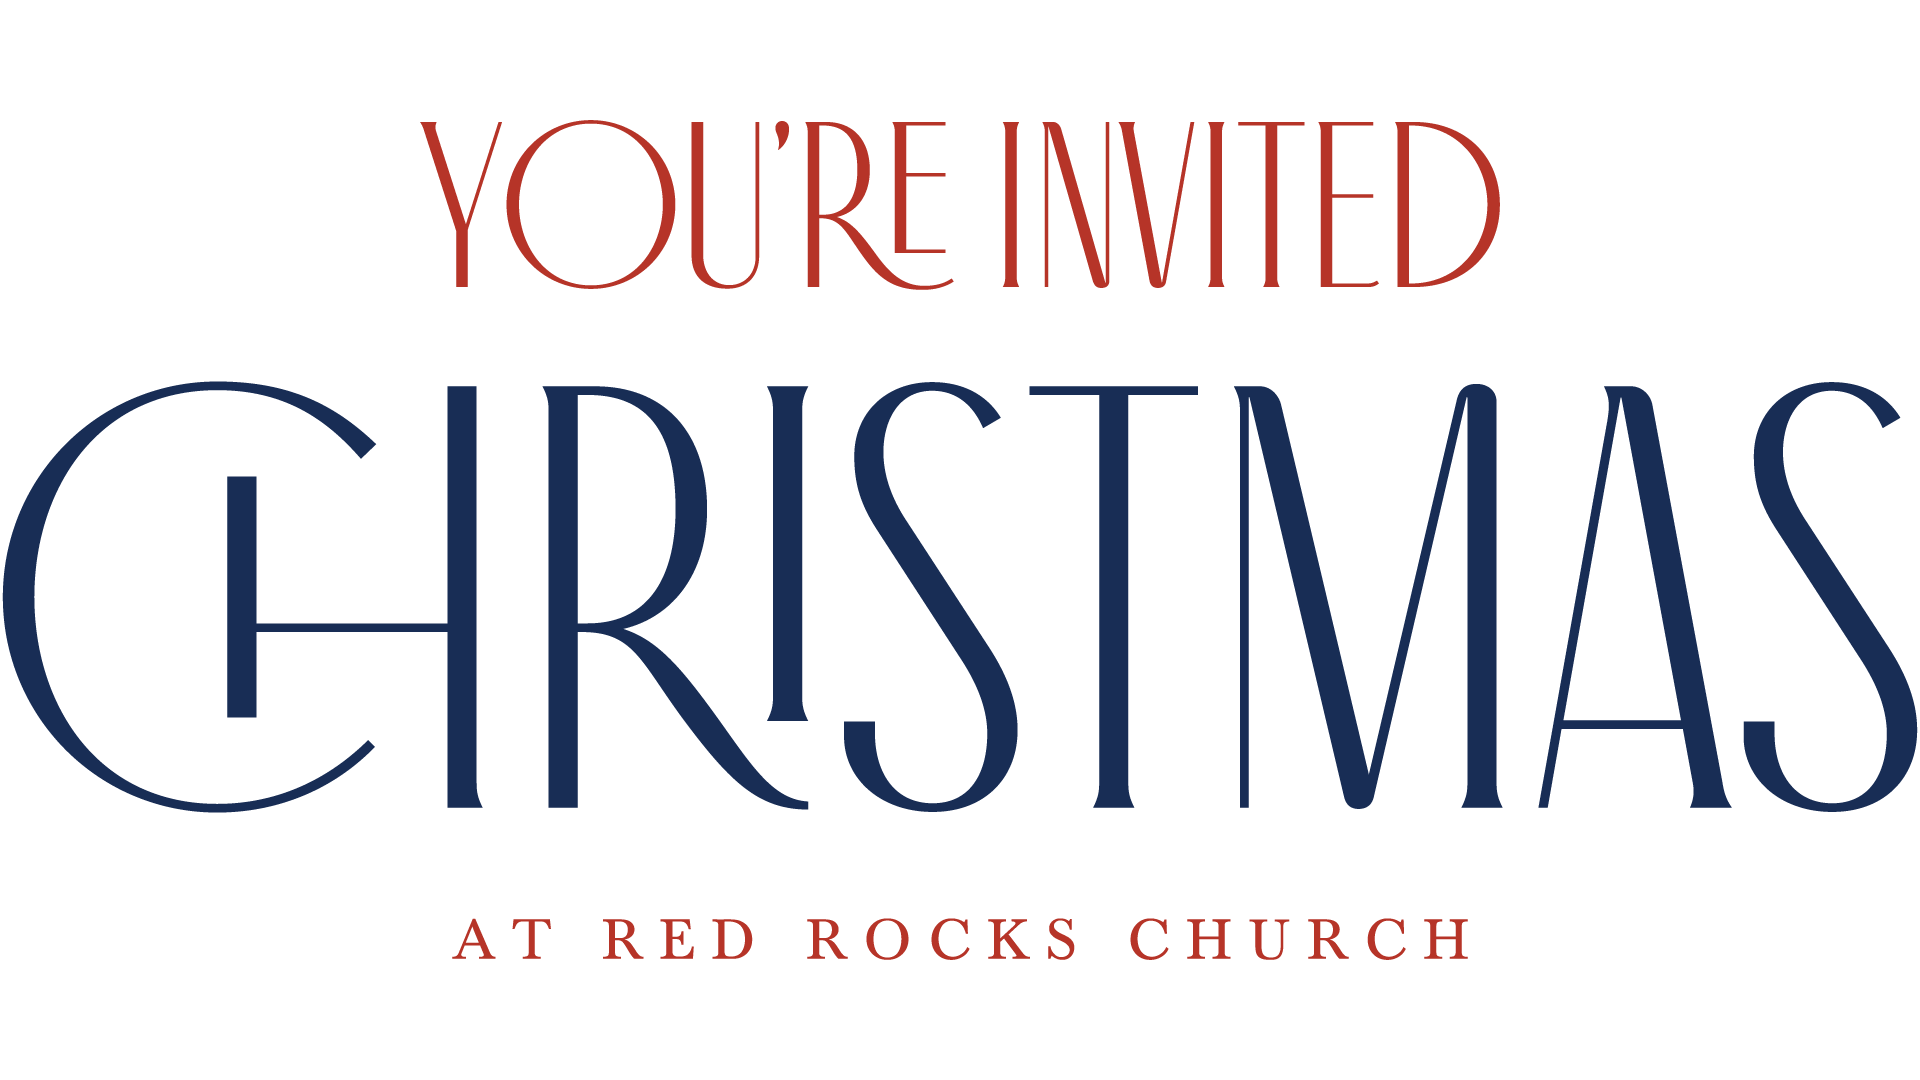 You're Invited: Christmas at Red Rocks Church